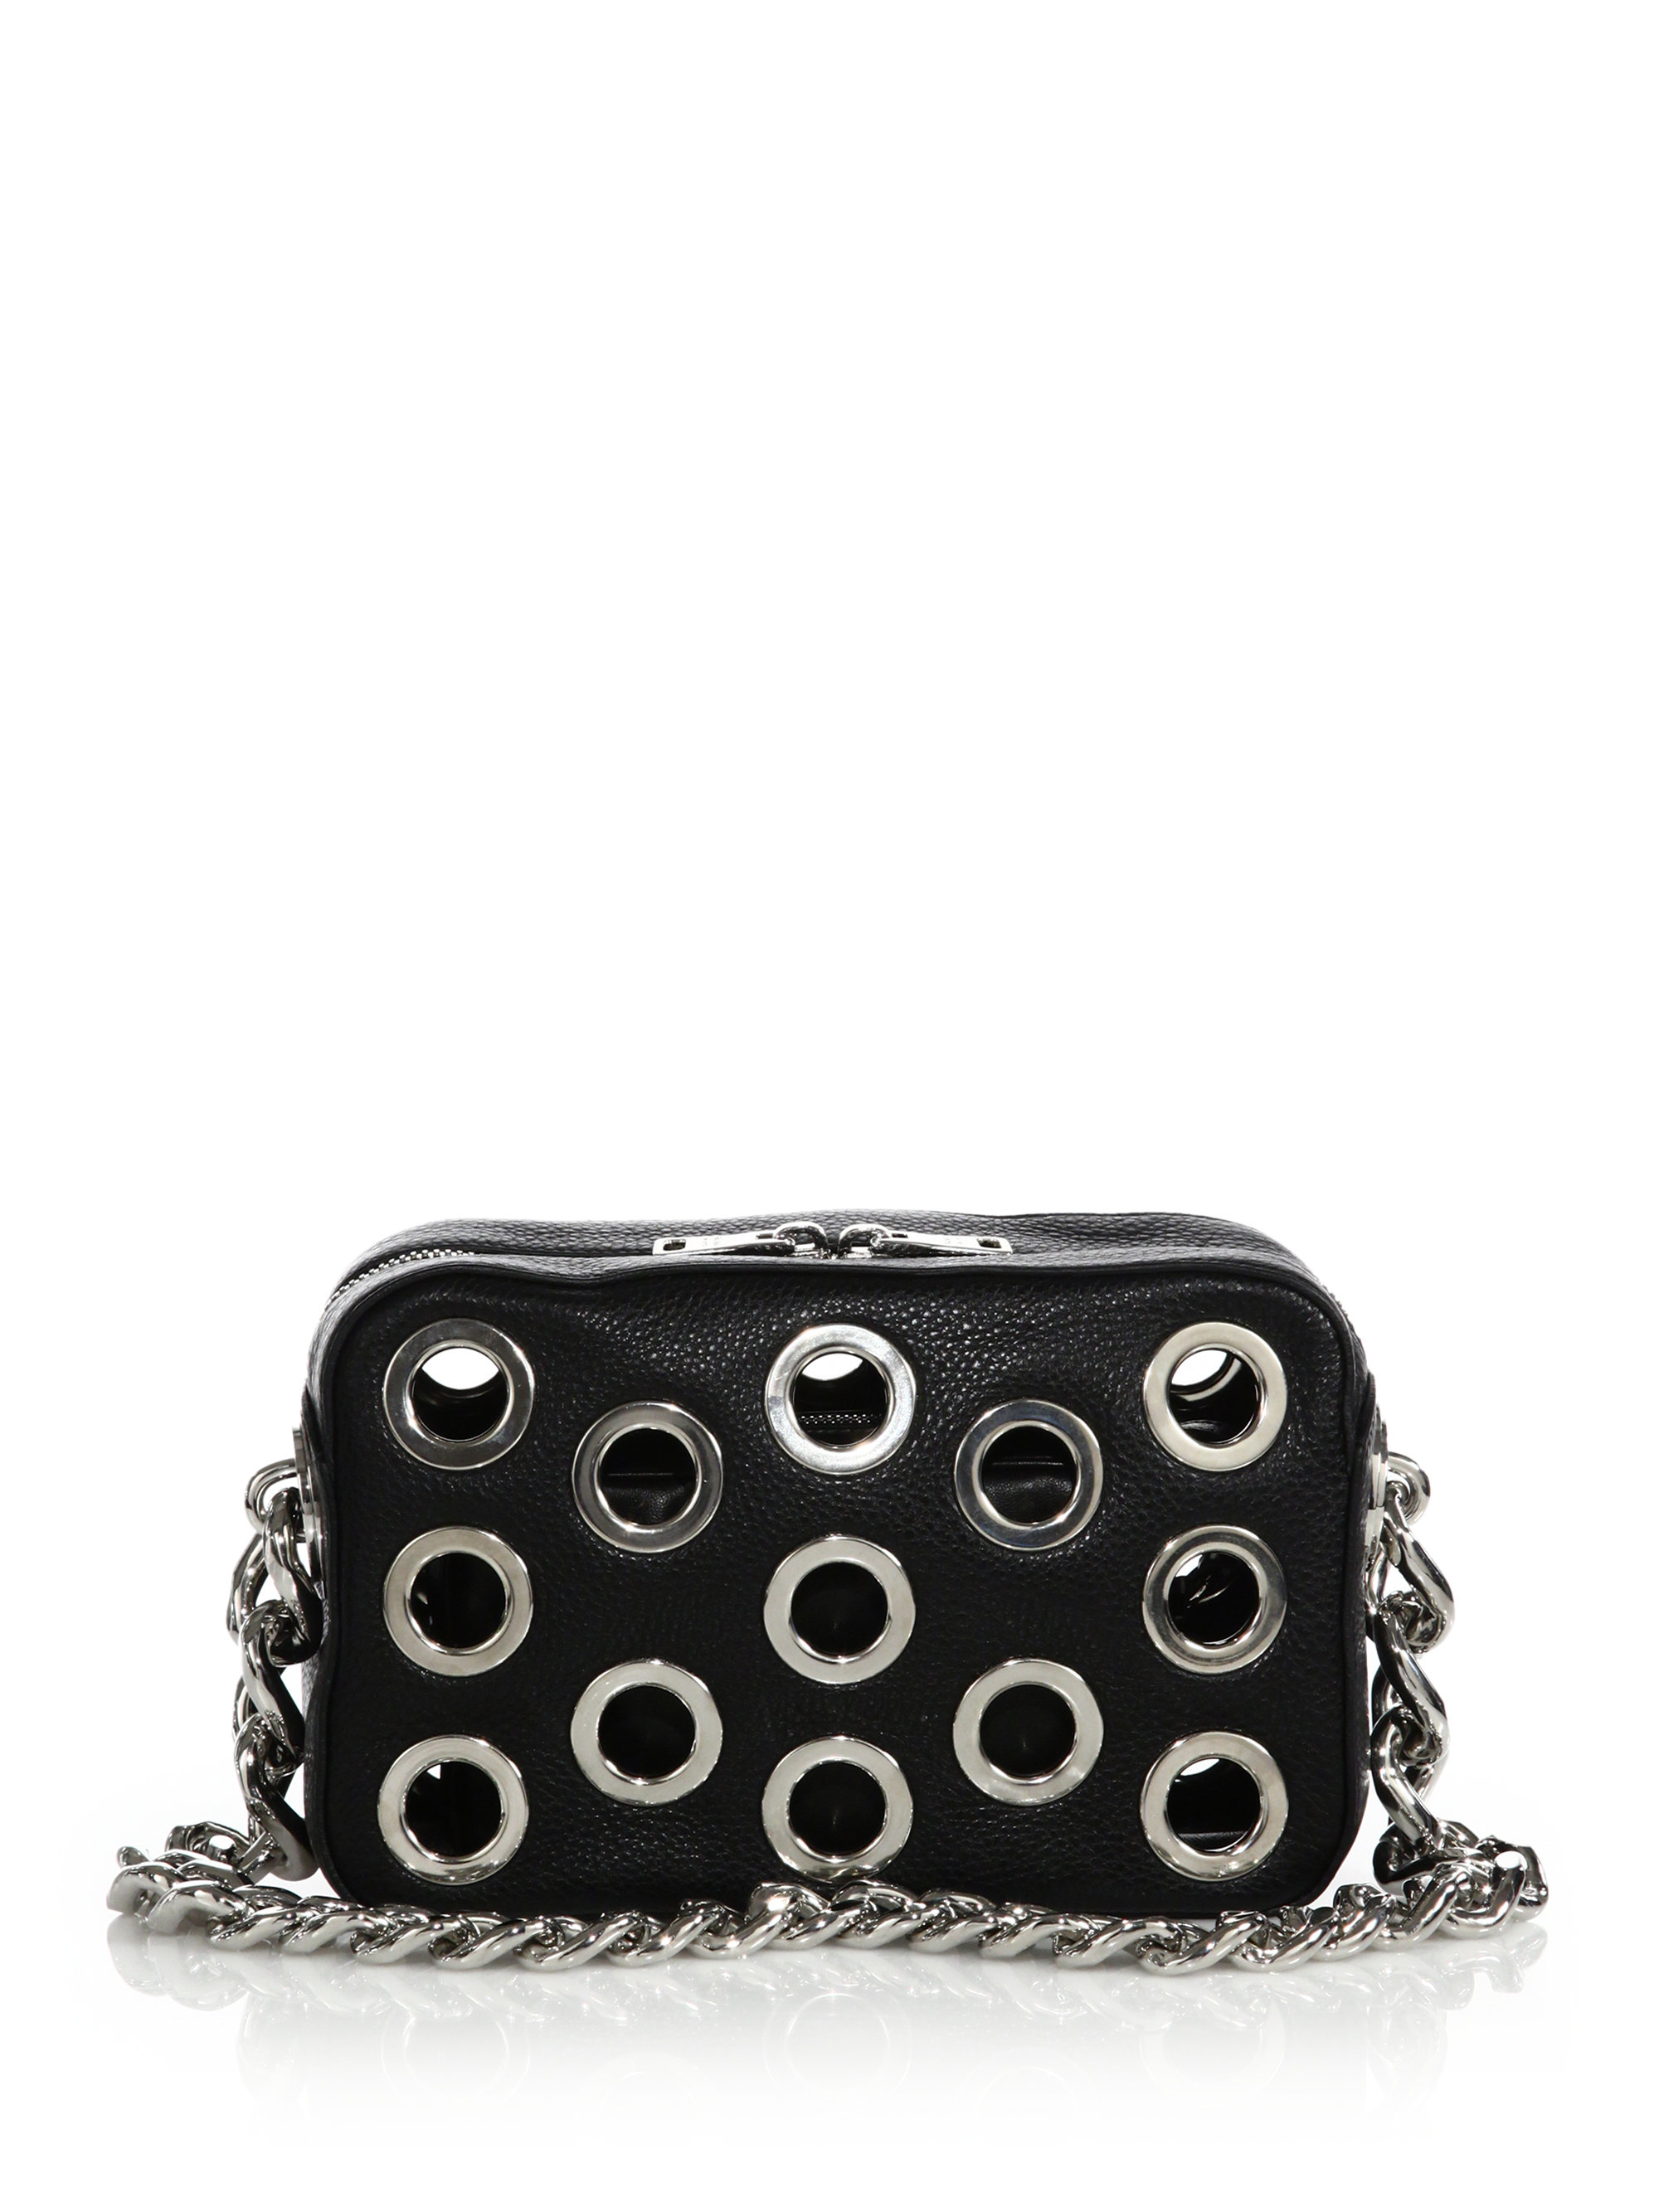 Prada Daino Chain Bowler Bag With Grommets in Black (nero) | Lyst